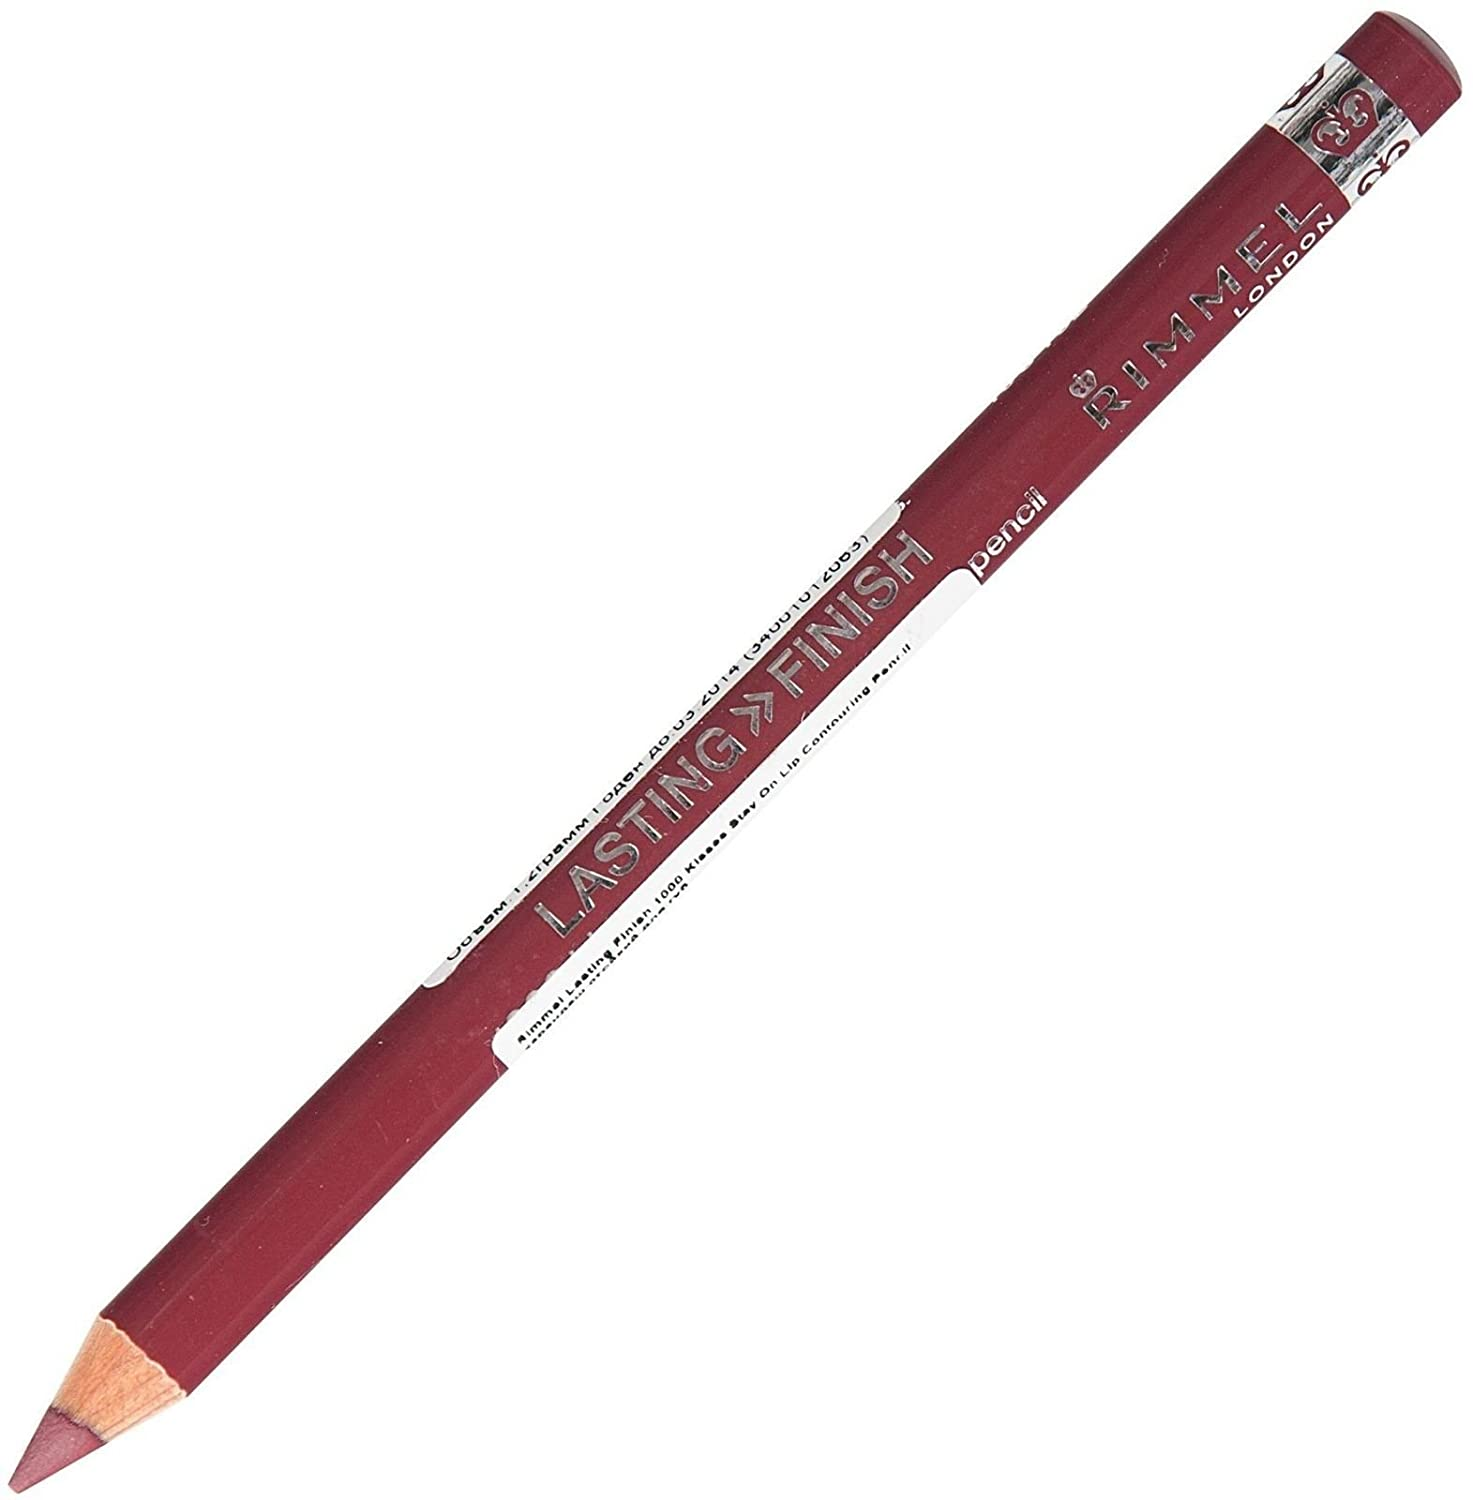 Image result for Rimmel London's Lasting Finish Lipliner in 011 Spice.